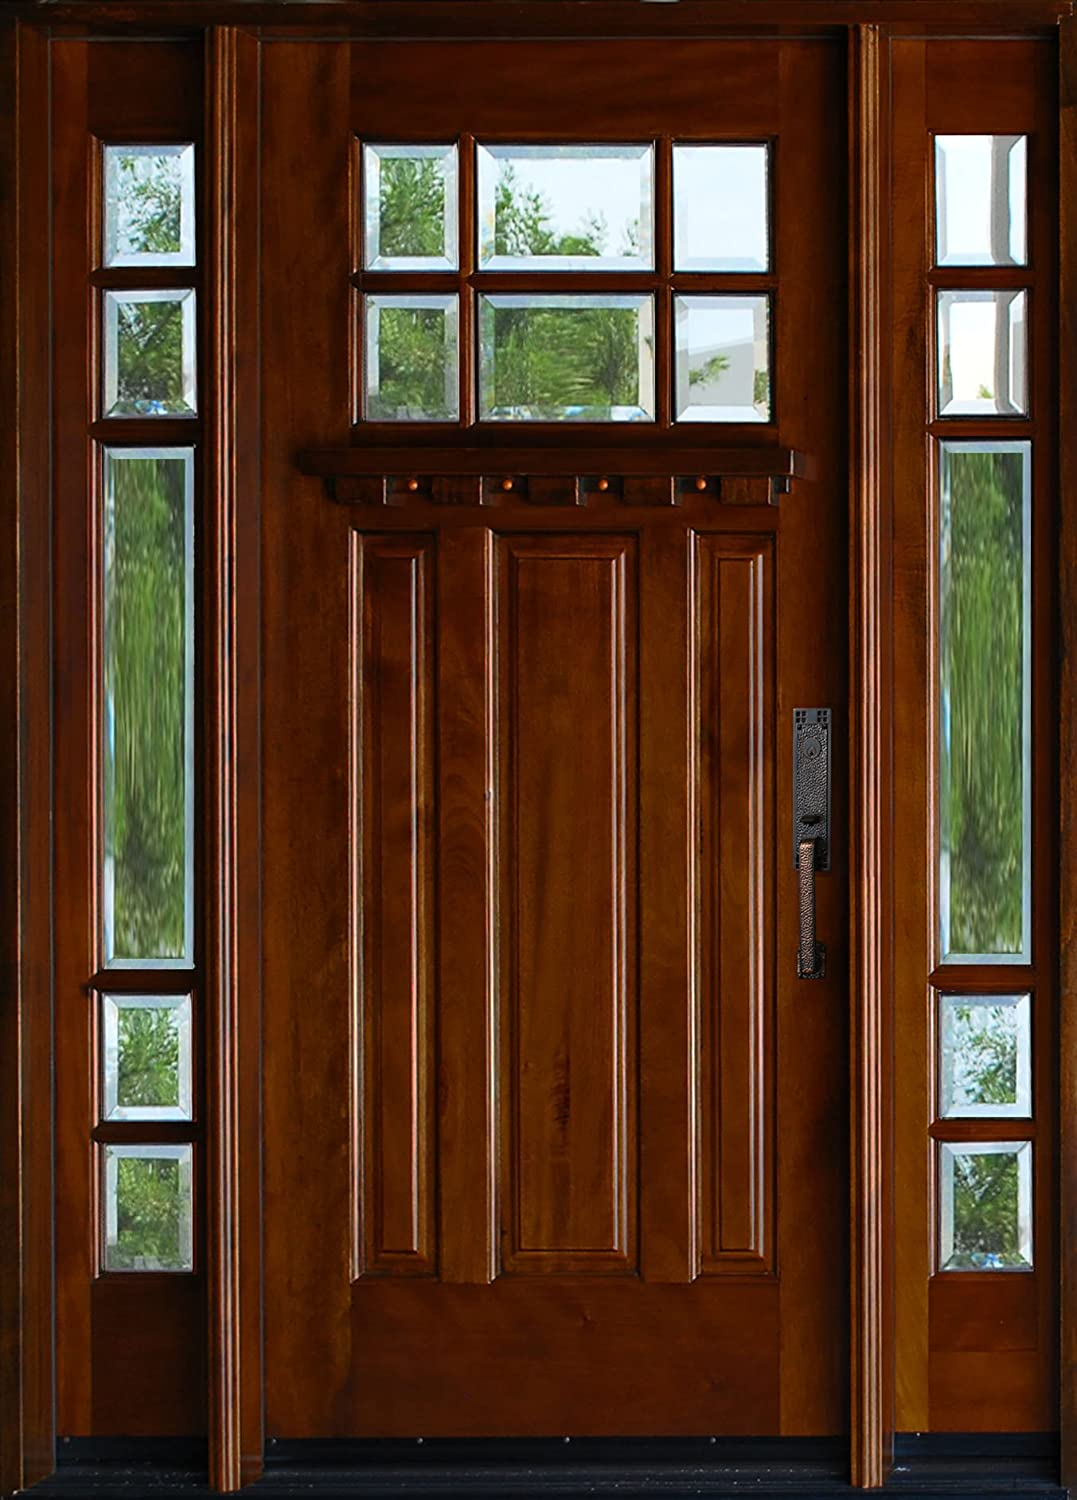 Exterior Mahagany Front Wood Entry Door M36 - - Amazon.com